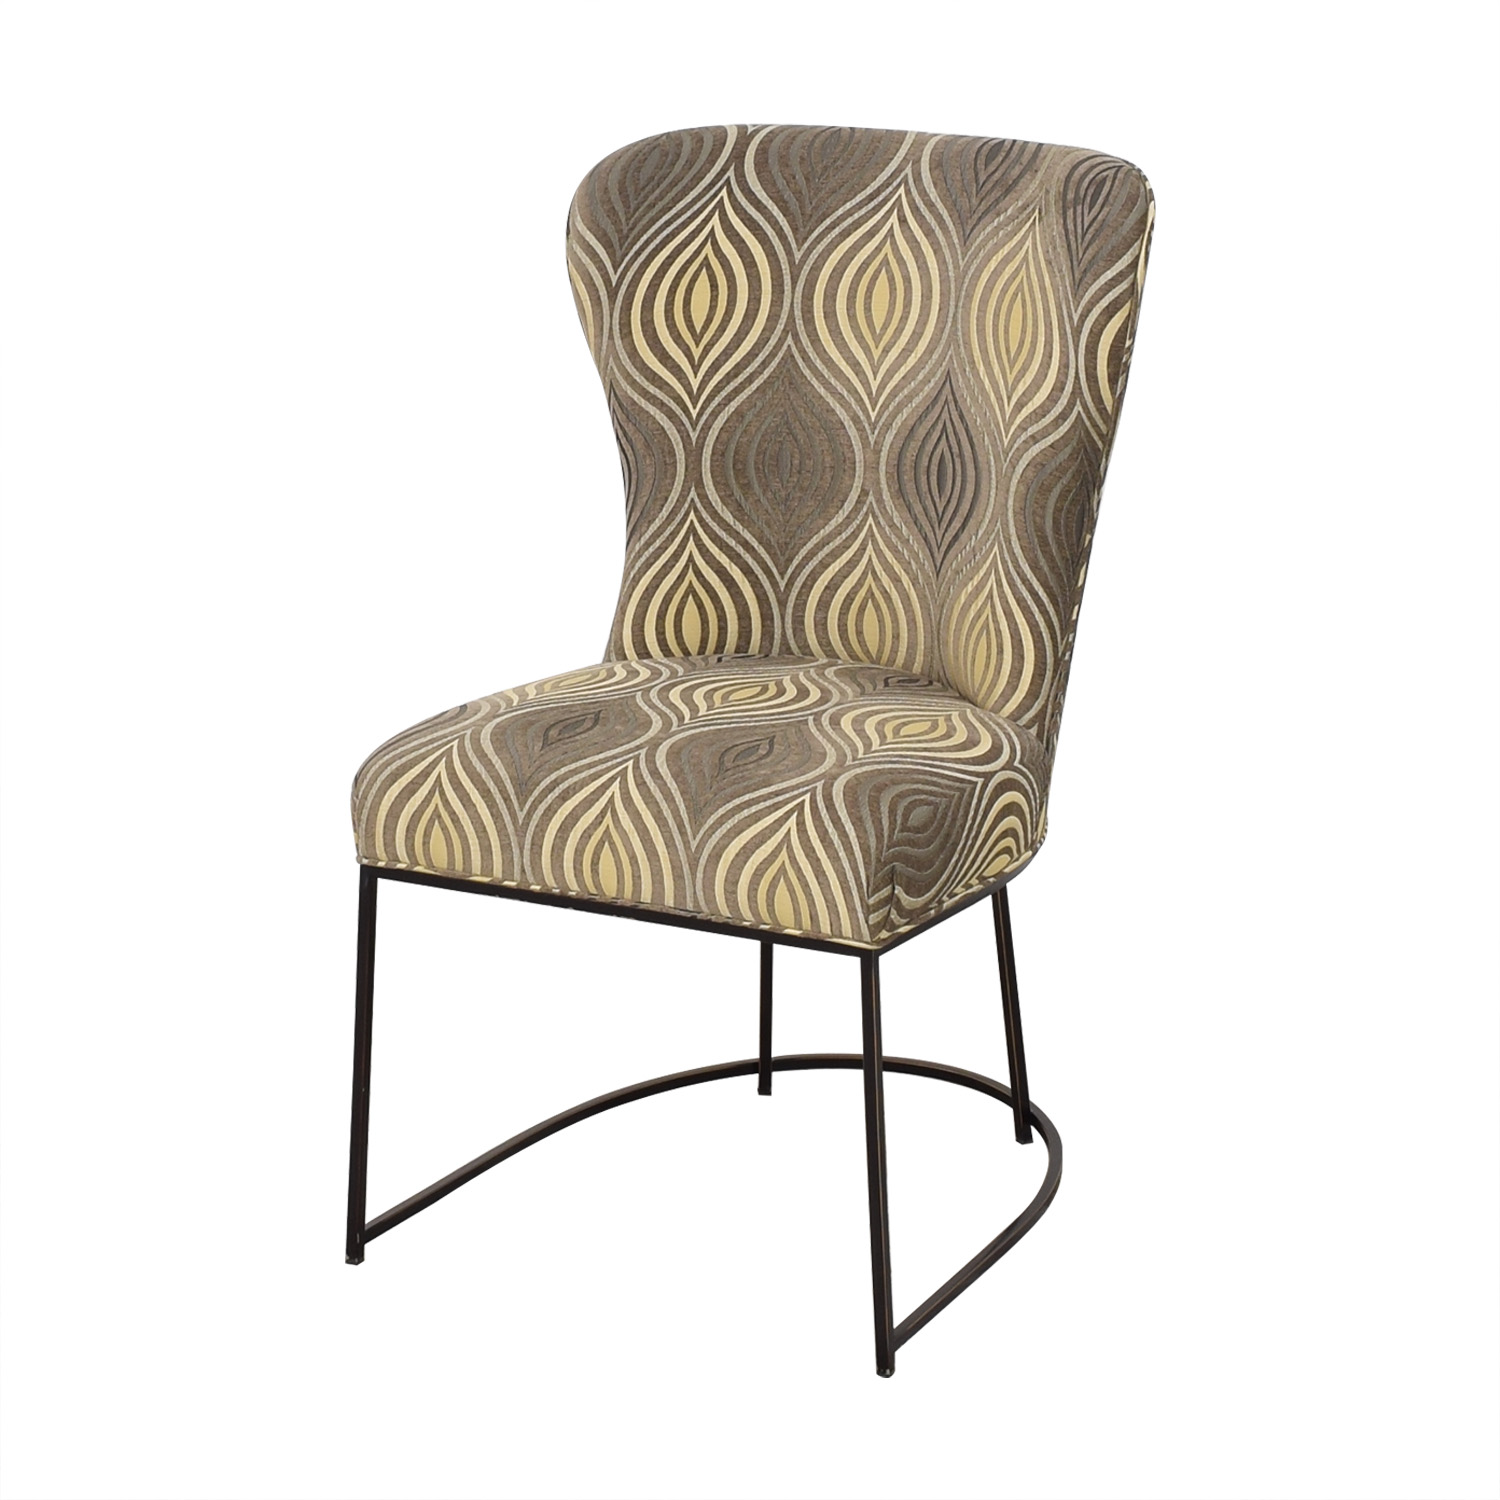 Custom Upholstered Dining Chairs Dining Chairs